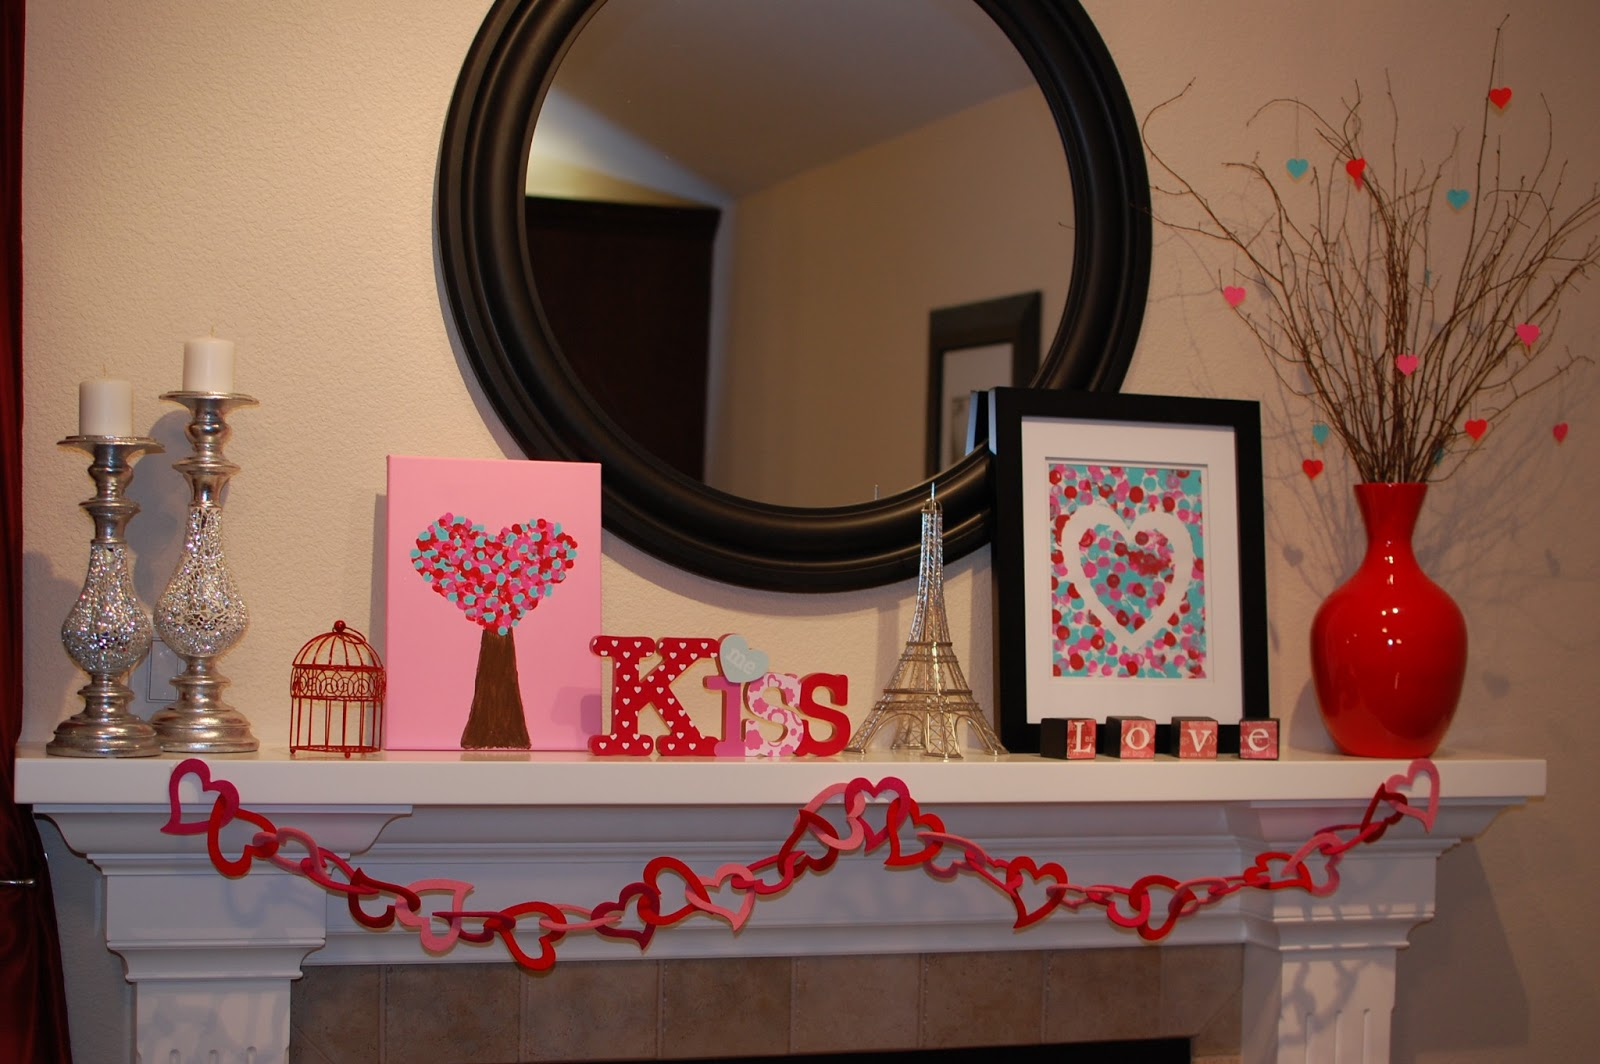 valentines day decor - Valentines Day Decor